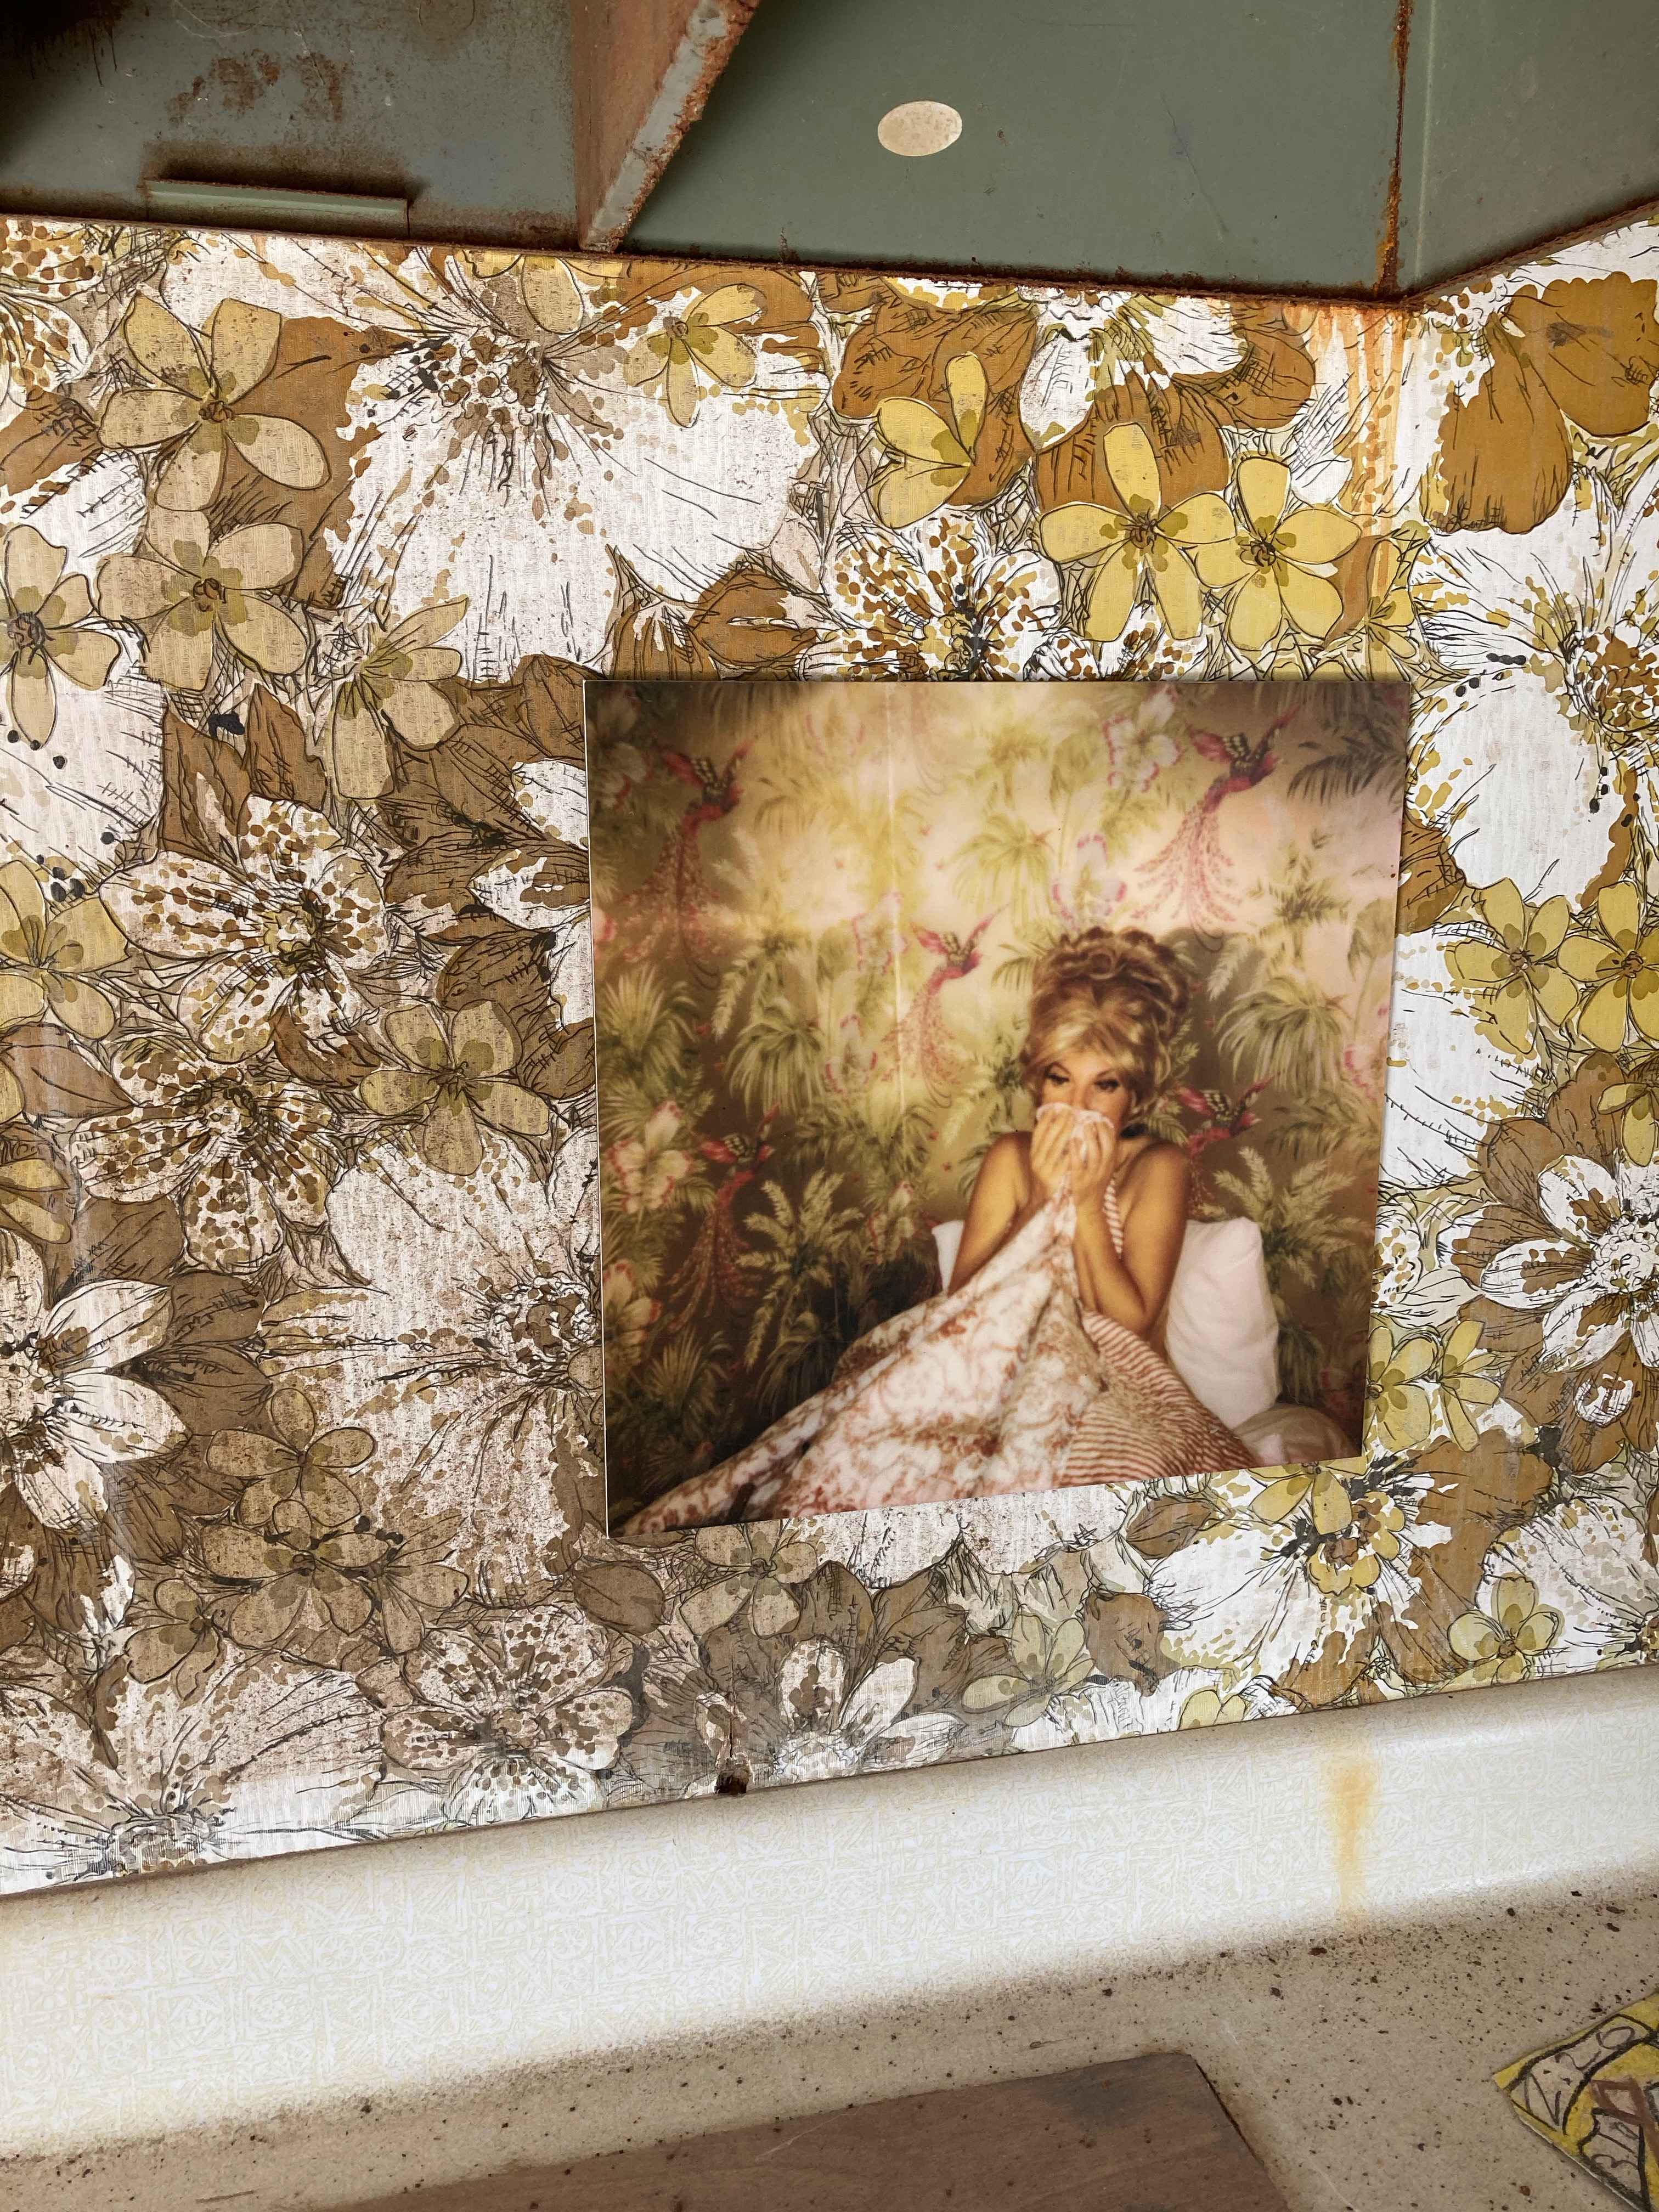 photograph of a woman in bed hanging on floral wallpaper